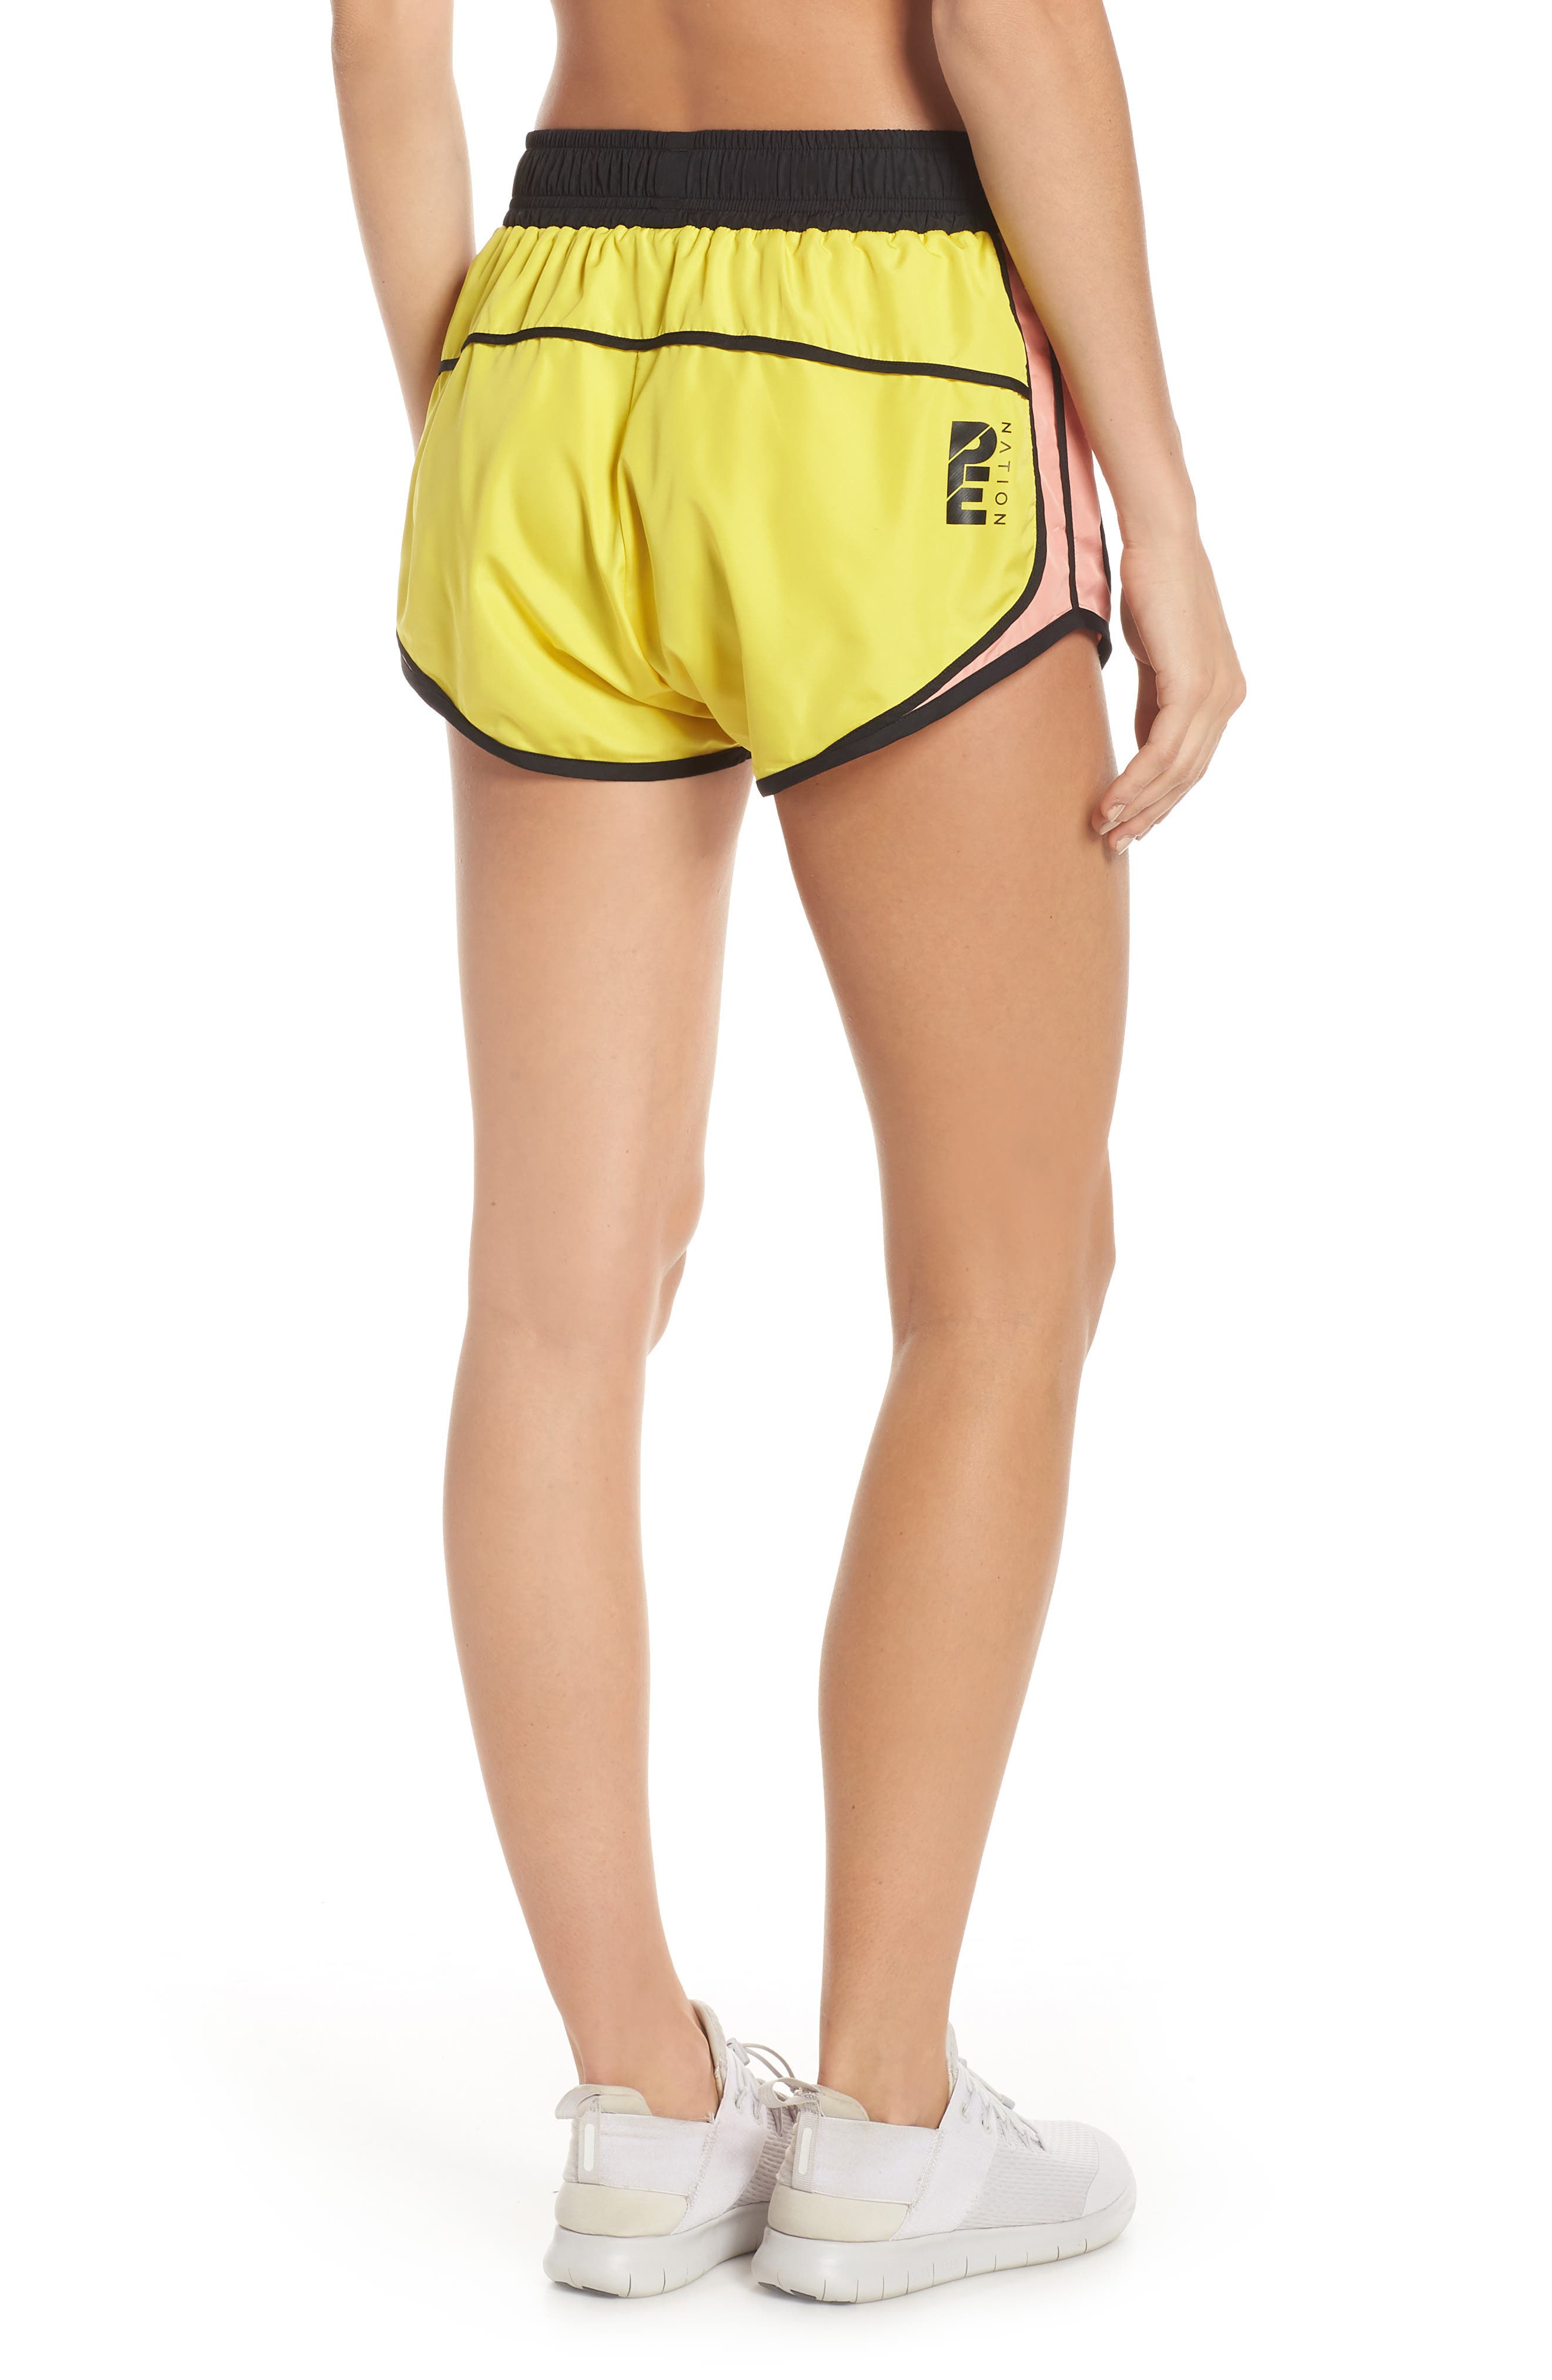 Sprint Vision Shorts,                             Alternate thumbnail 2, color,                             YELLOW